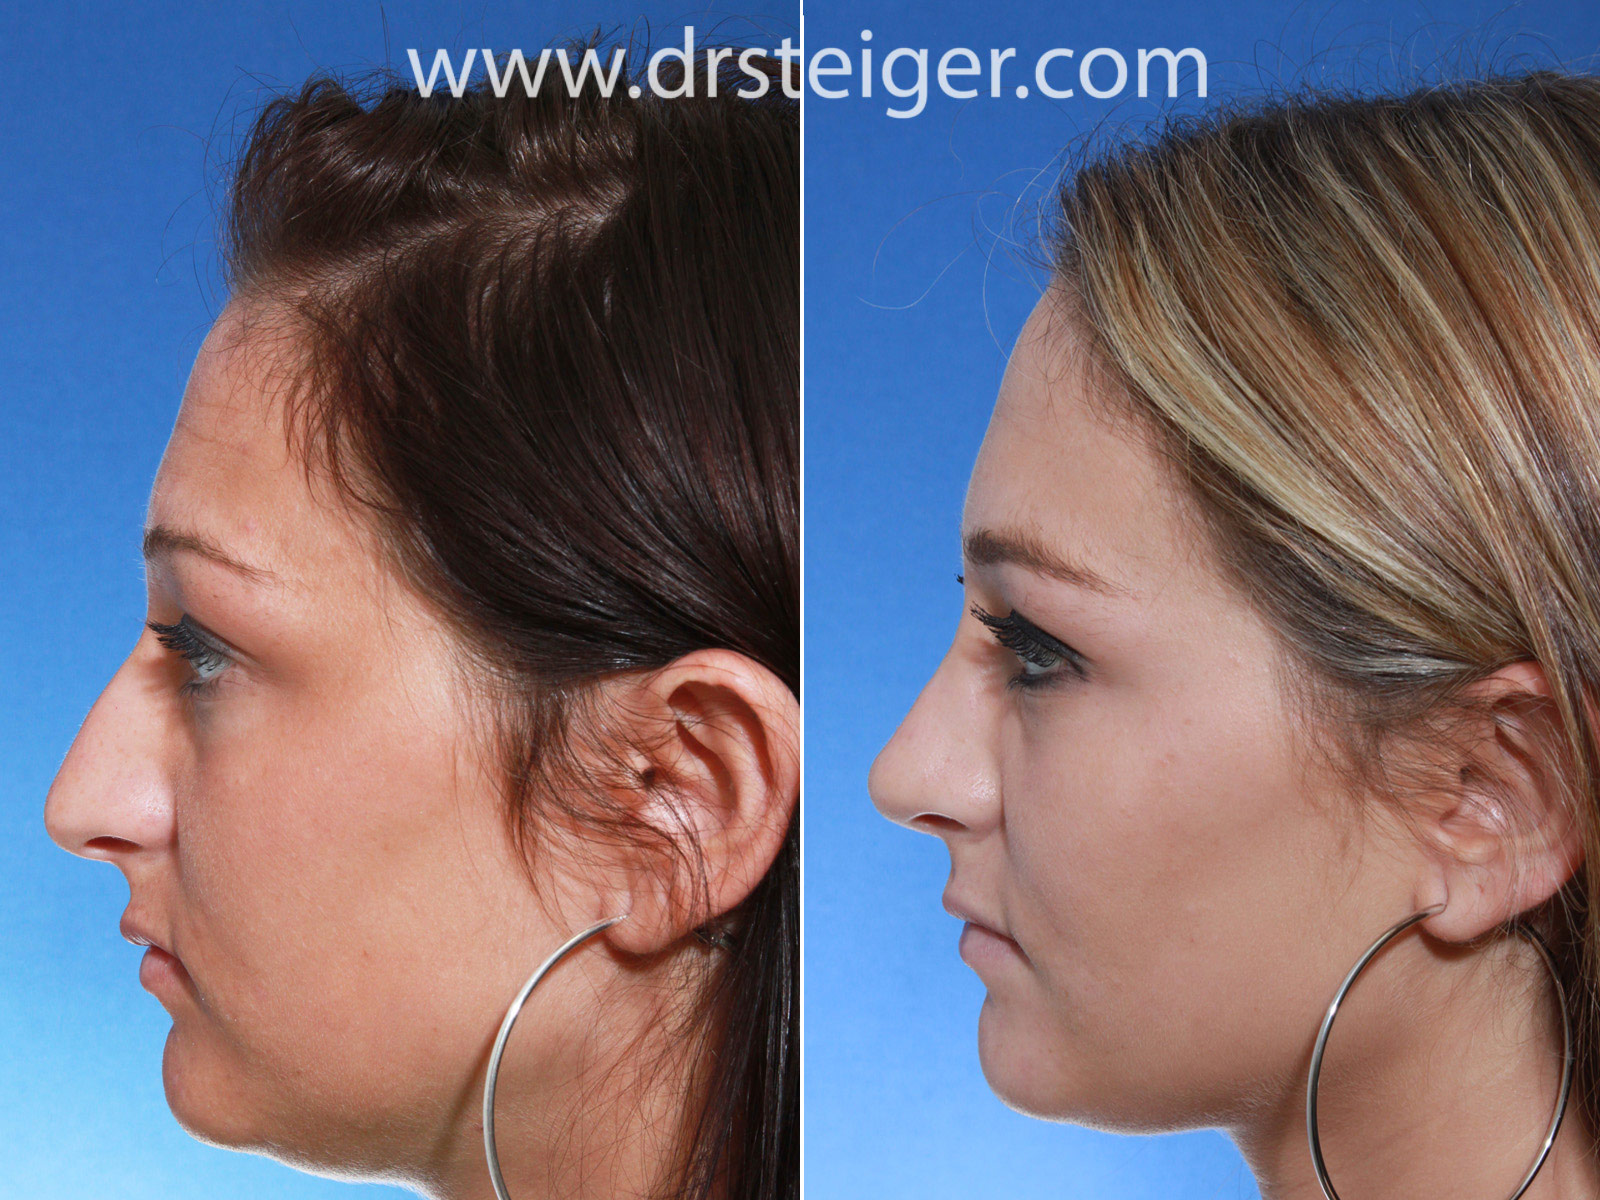 Rhinoplasty Before and After Photos | Steiger Facial Plastic